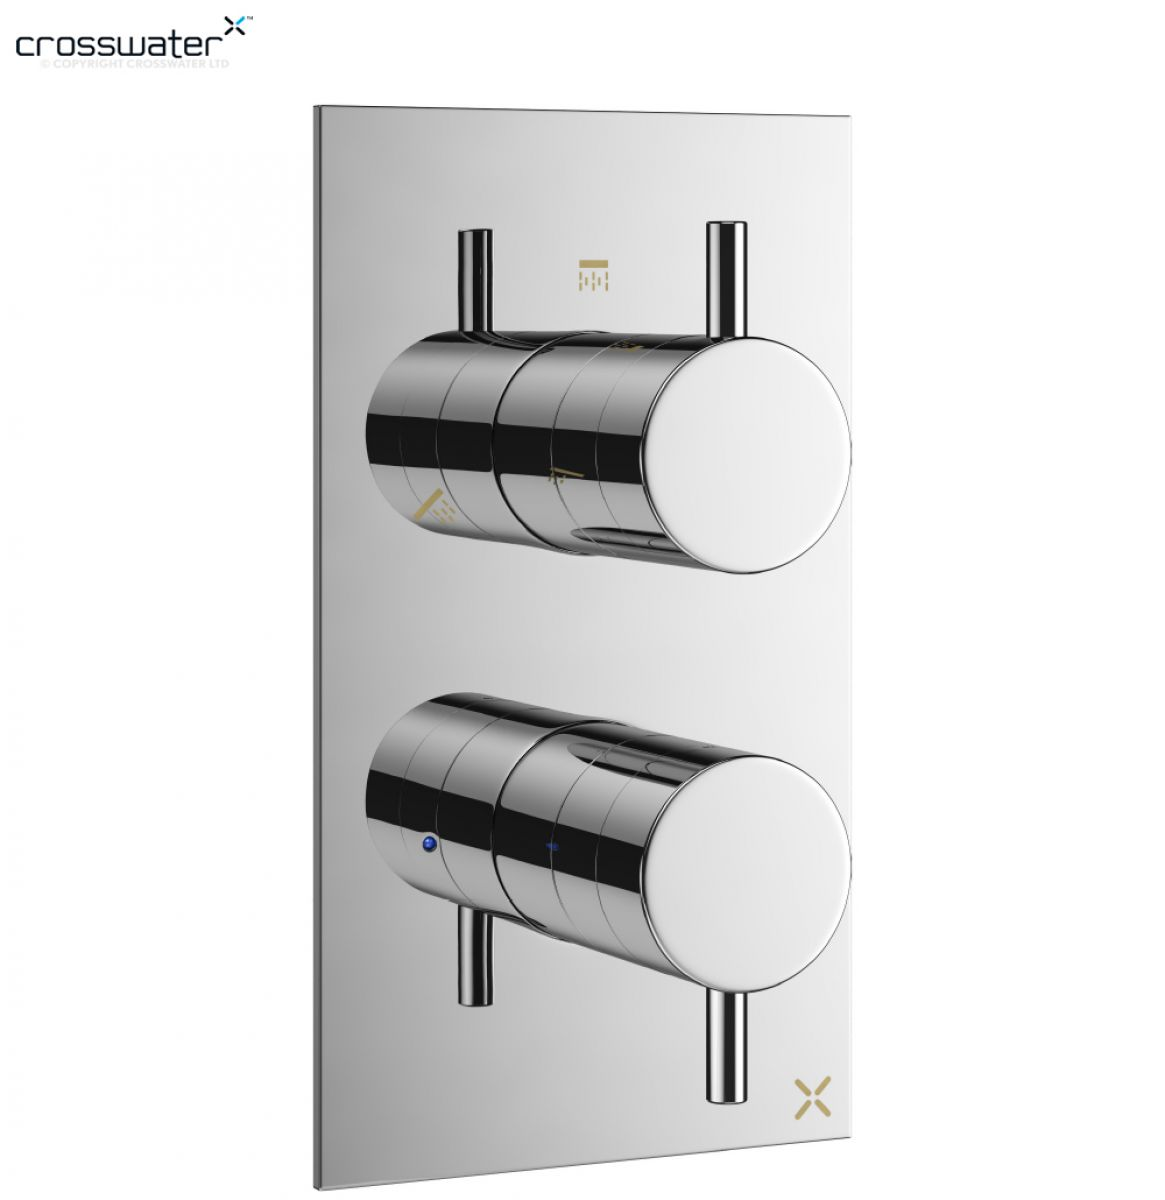 Crosswater mike pro thermostatic shower valve uk bathrooms - Shower controls ...